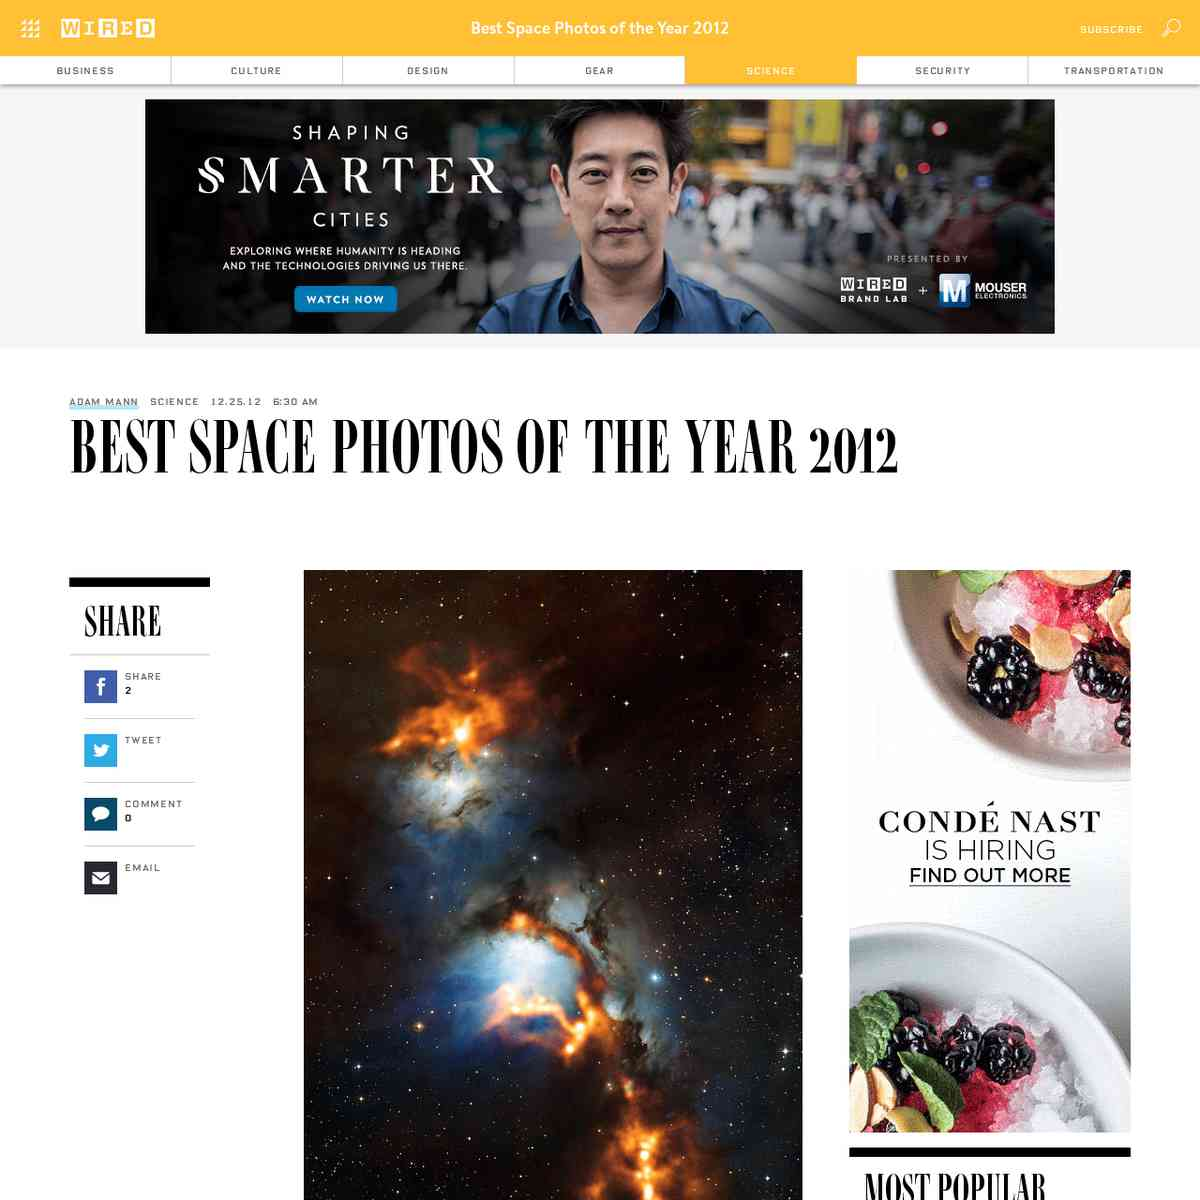 Best Space Photos of the Year 2012 | Wired Science | Wired.com